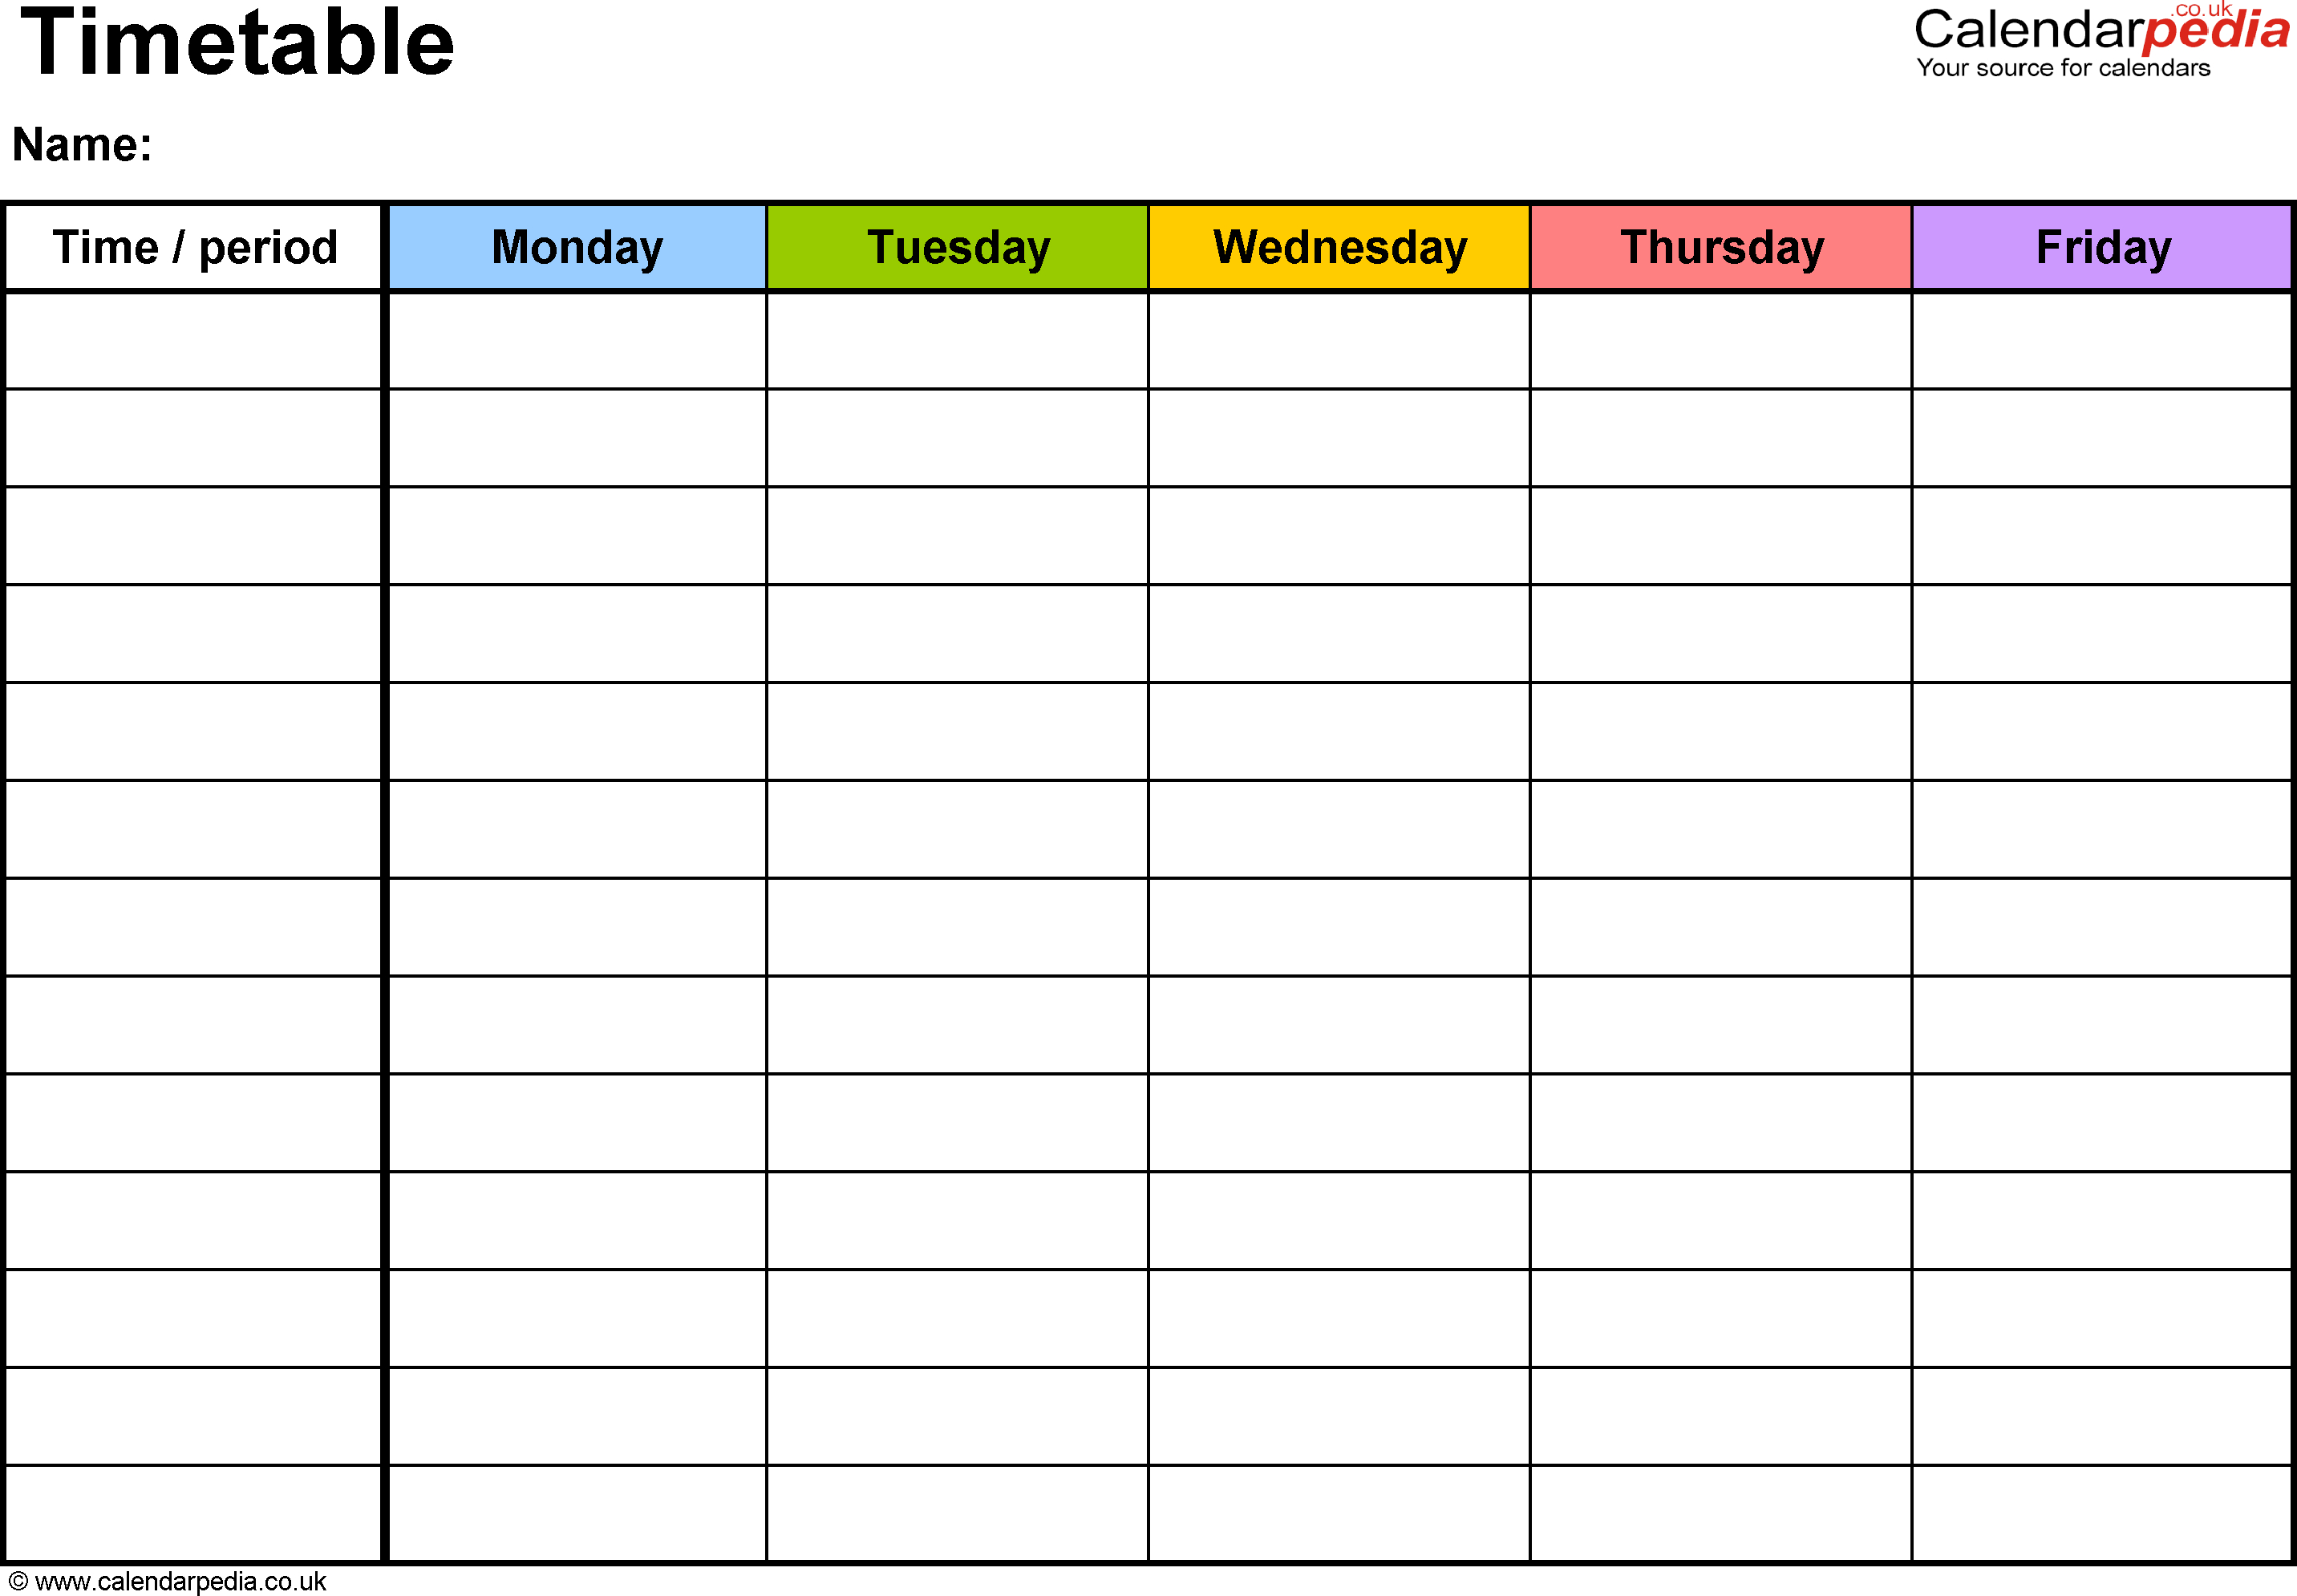 Pdf Timetable Template 2: Landscape Format, A4, 1 Page In Blank Revision Timetable Template